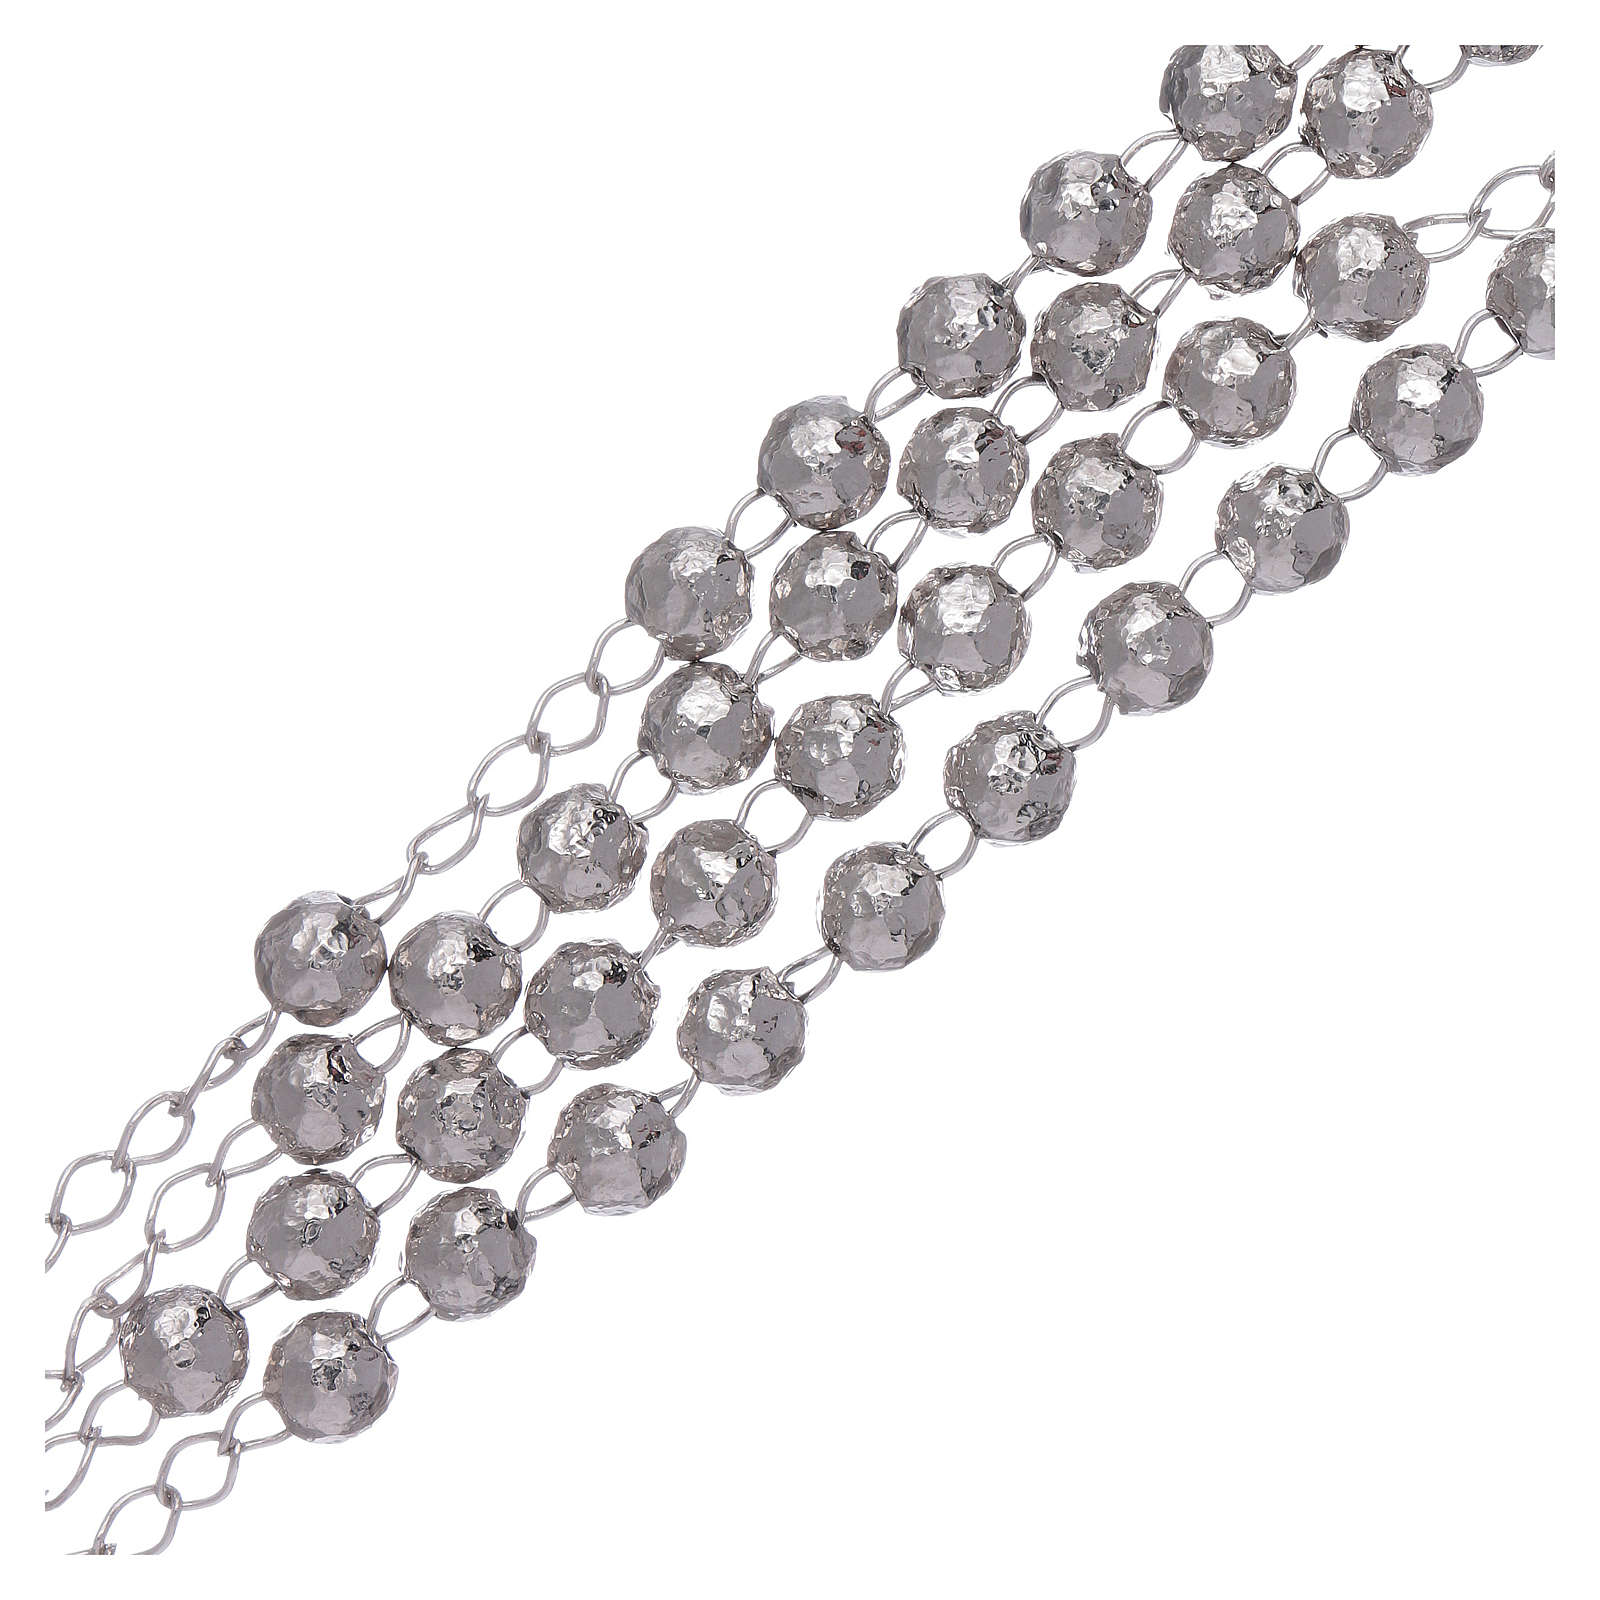 AMEN classic rosary in 925 sterling silver finished in rhodium and 4 mm spheres 4